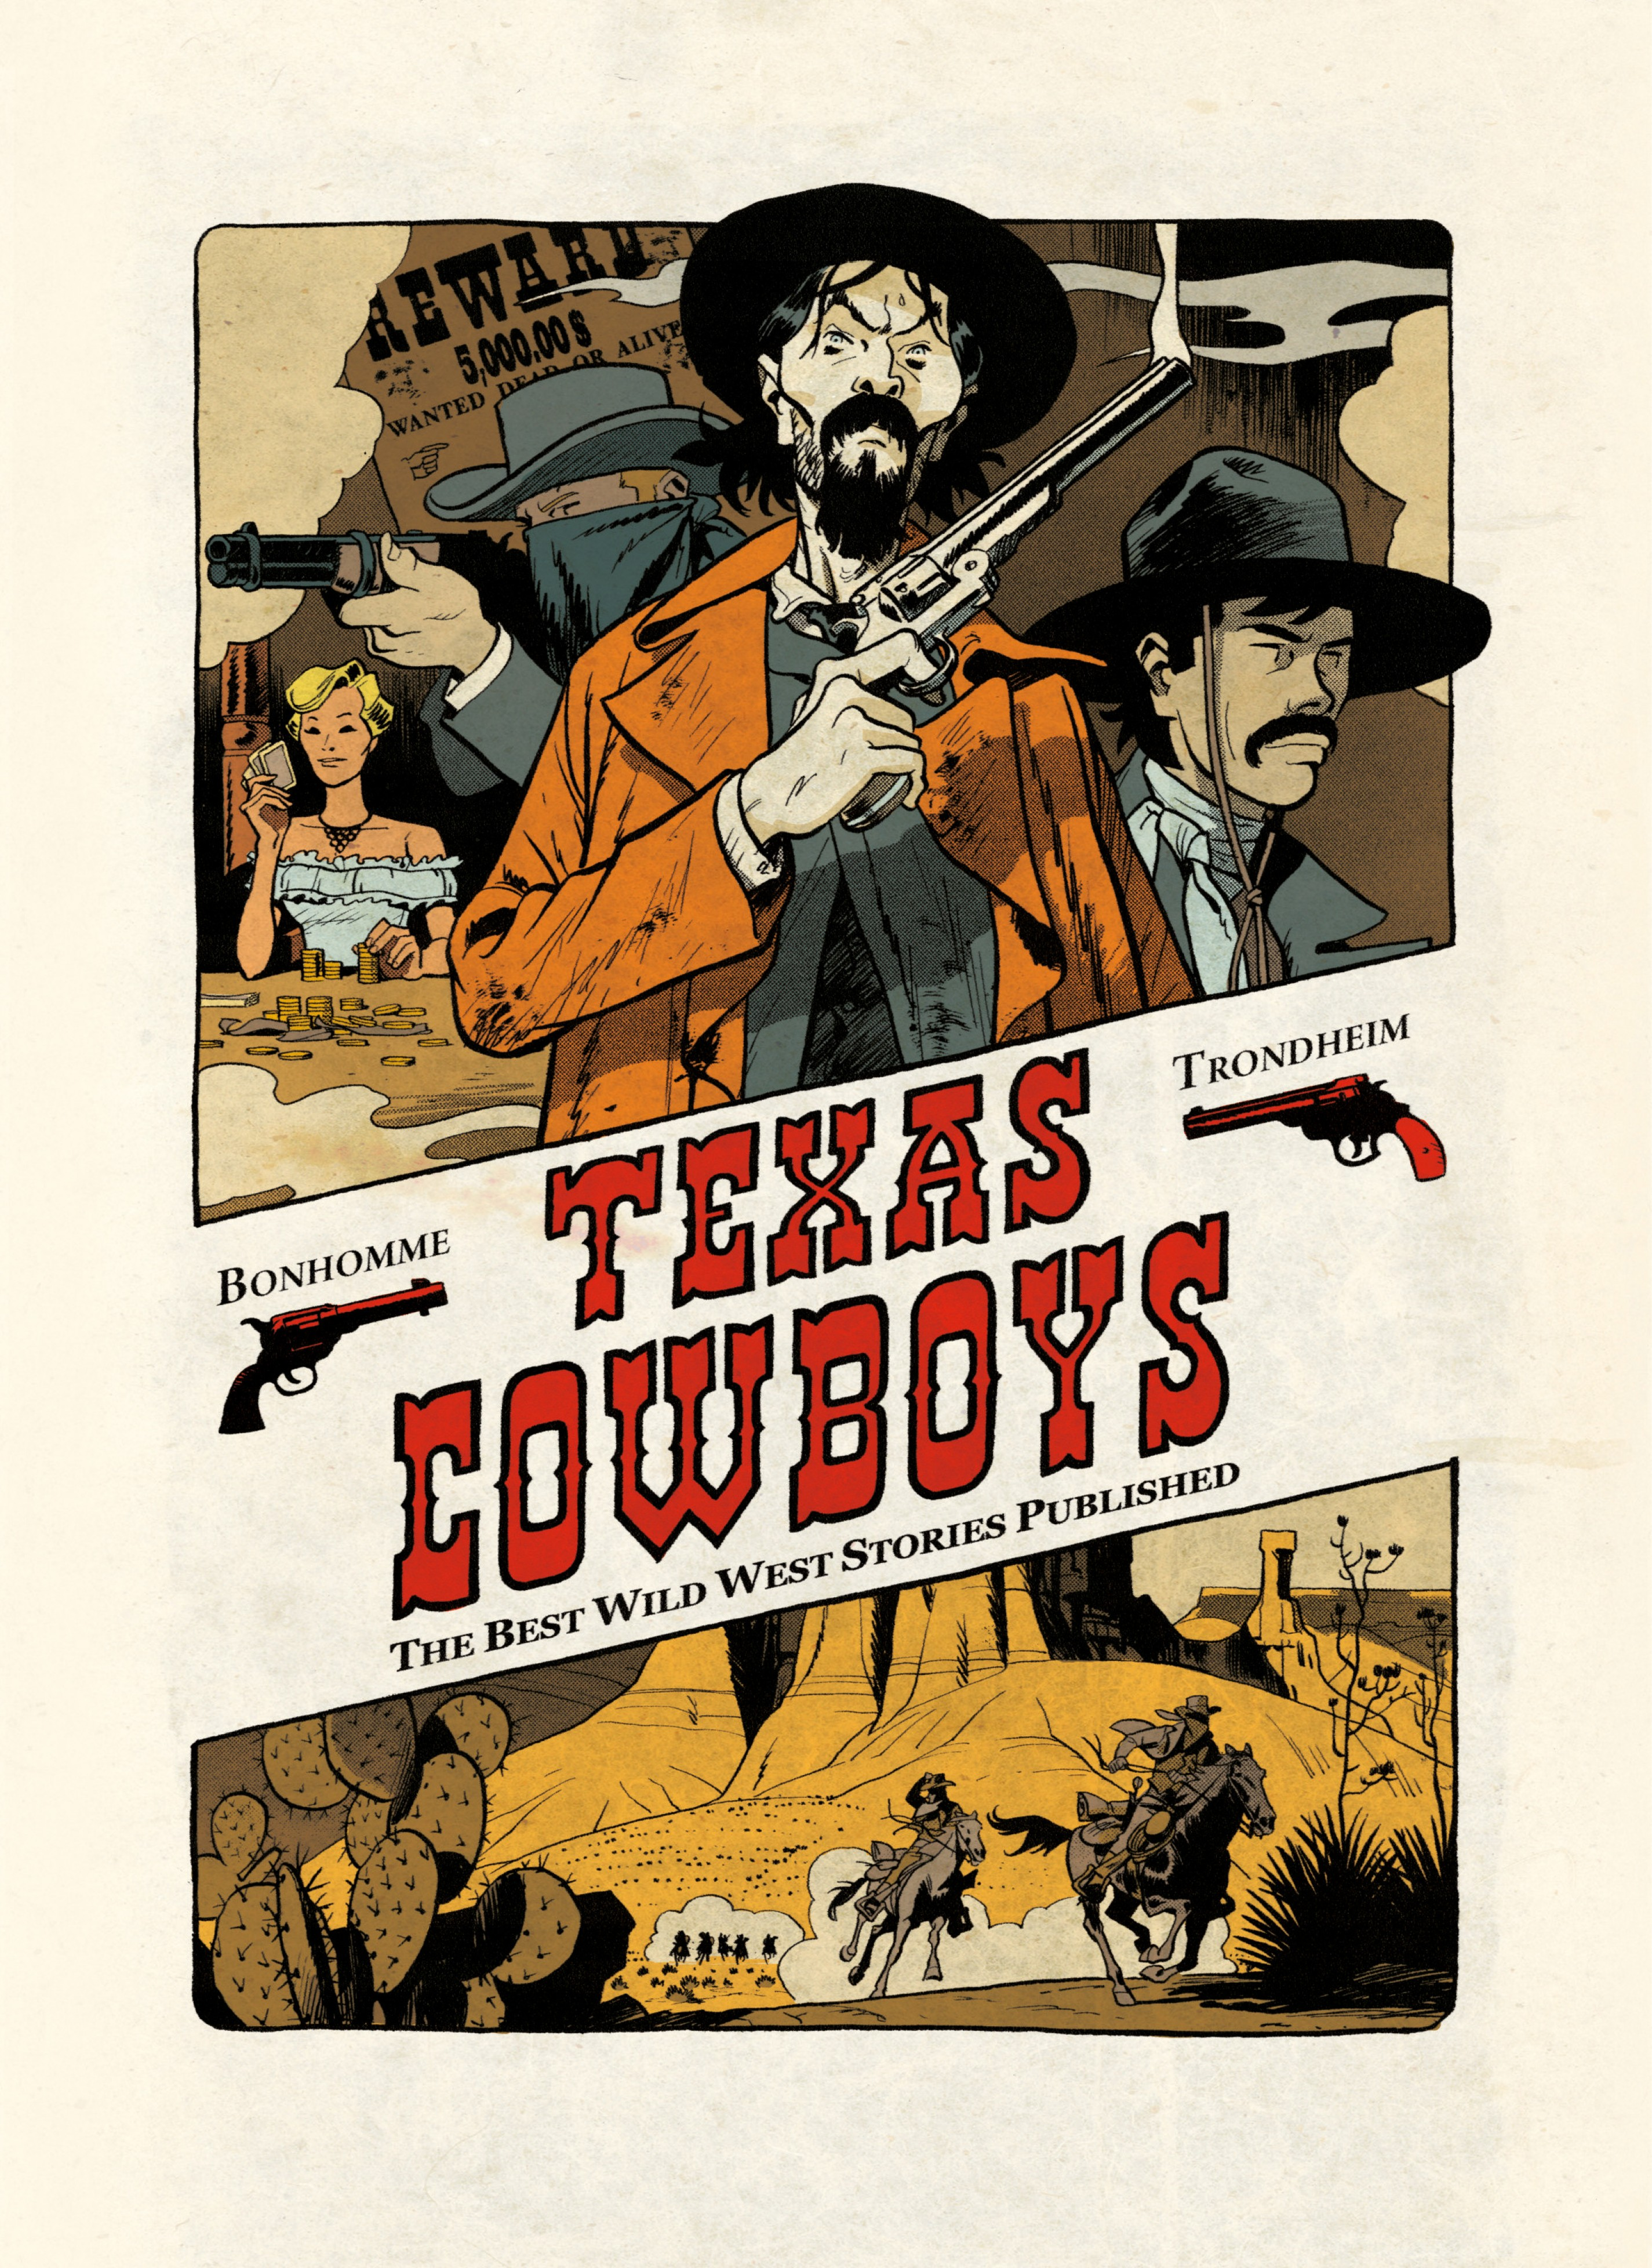 Vignette du livre Texas cowboys: The best wild west stories published - MATTHIEU BONHOMME, Lewis Trondheim